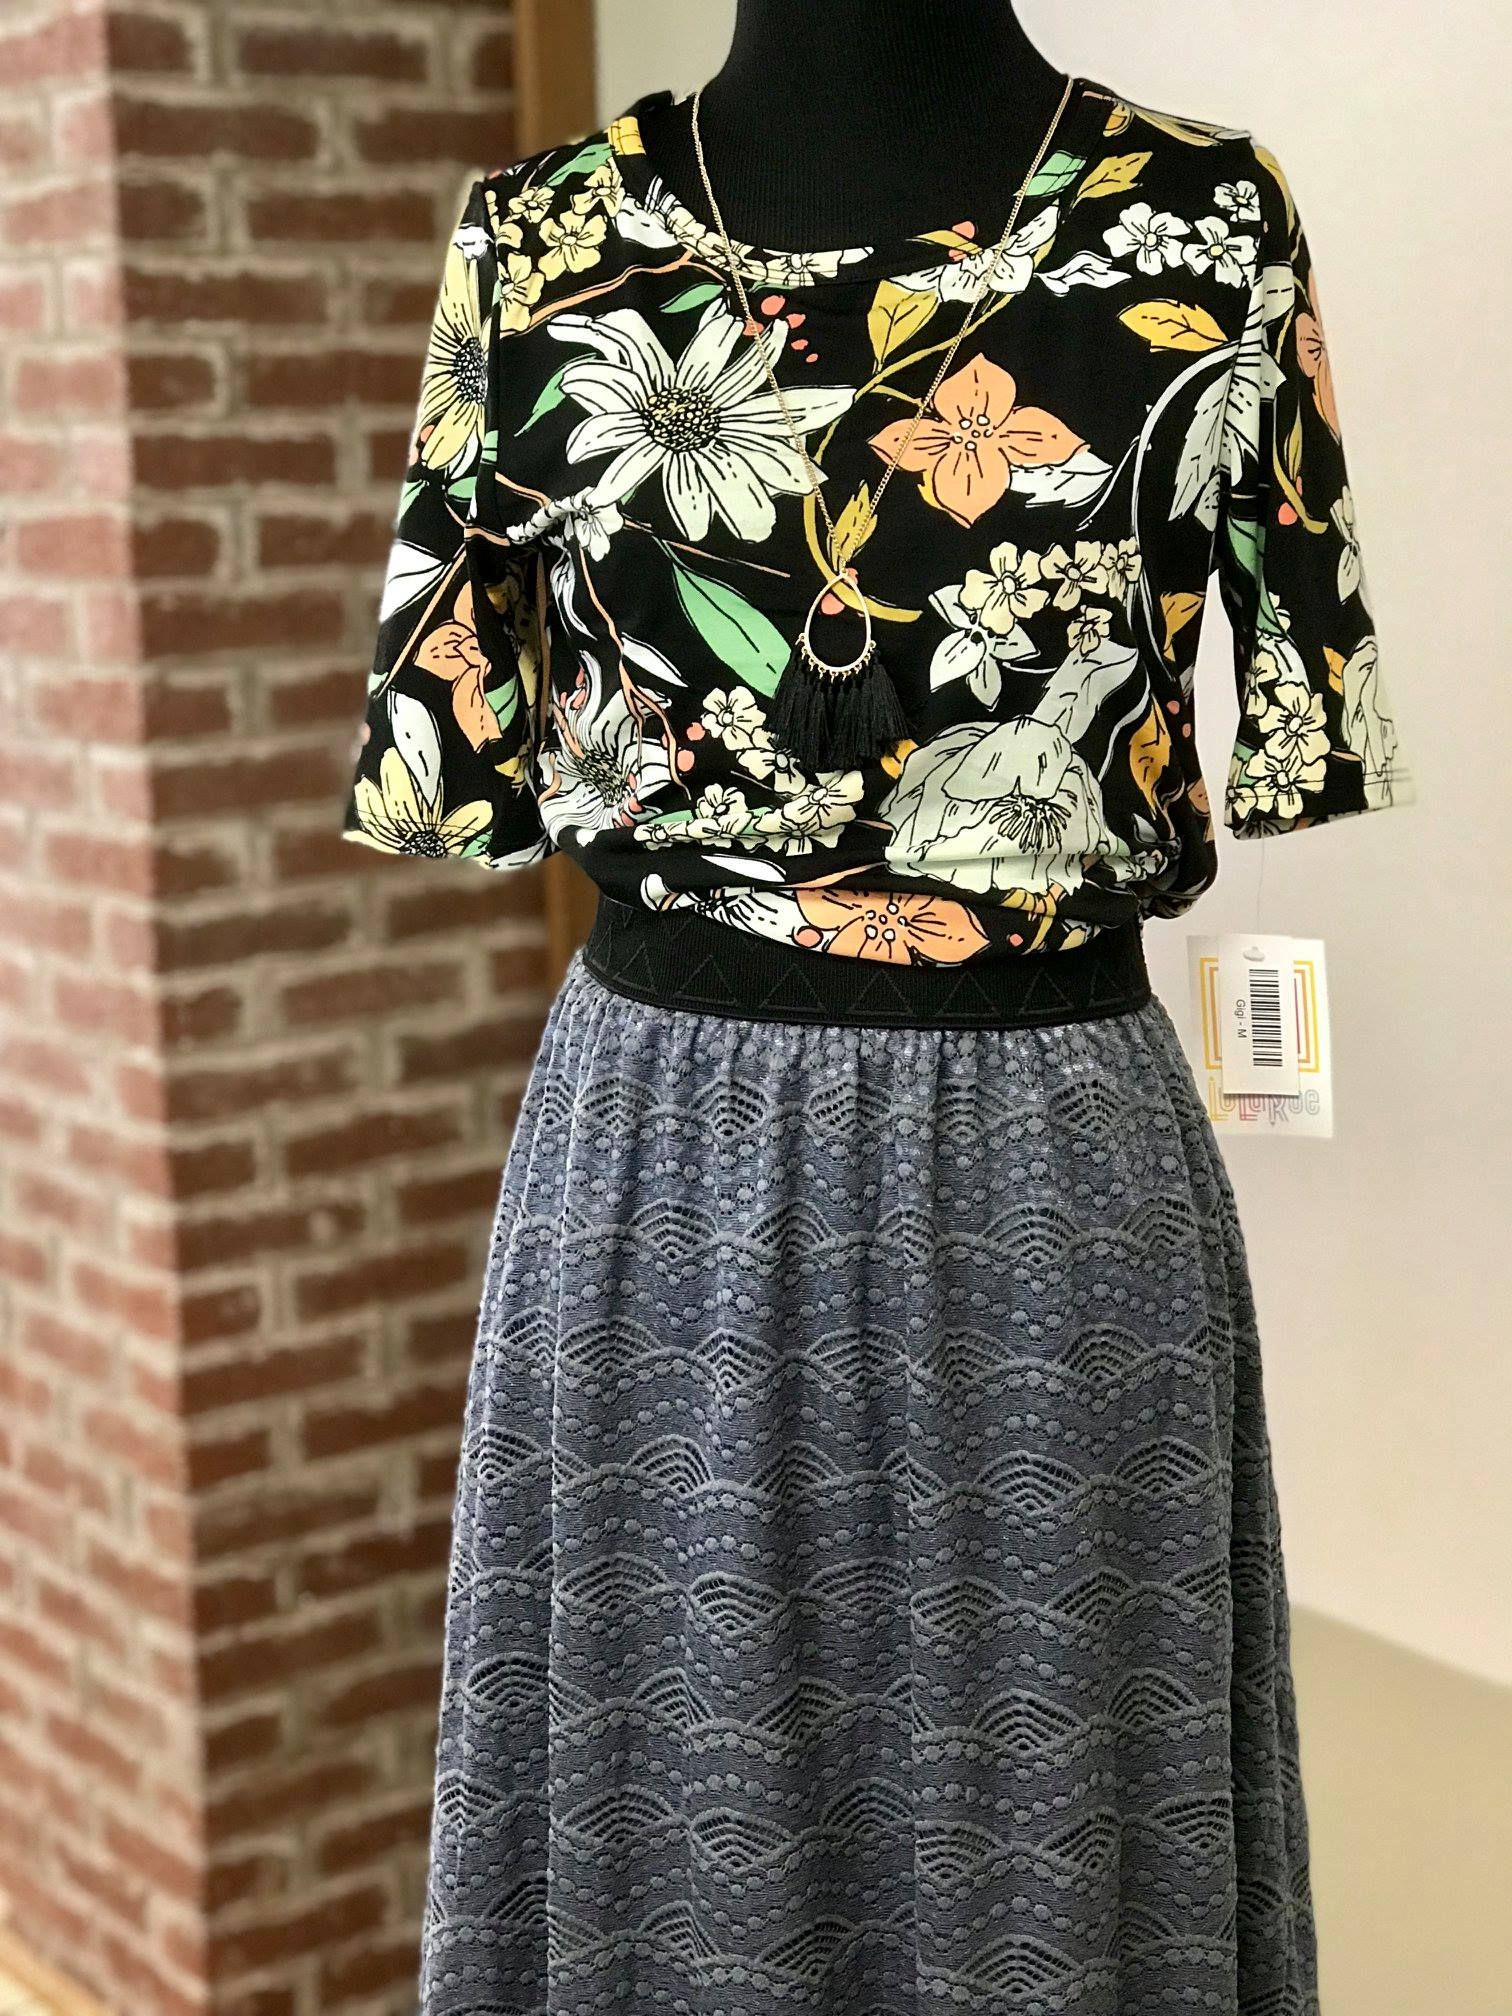 52d528af6298a We all know I love Lola! This is the perfect shade of grey matched with one  of my favorite prints in a Gigi. What a great work outfit .... and let s  not ...